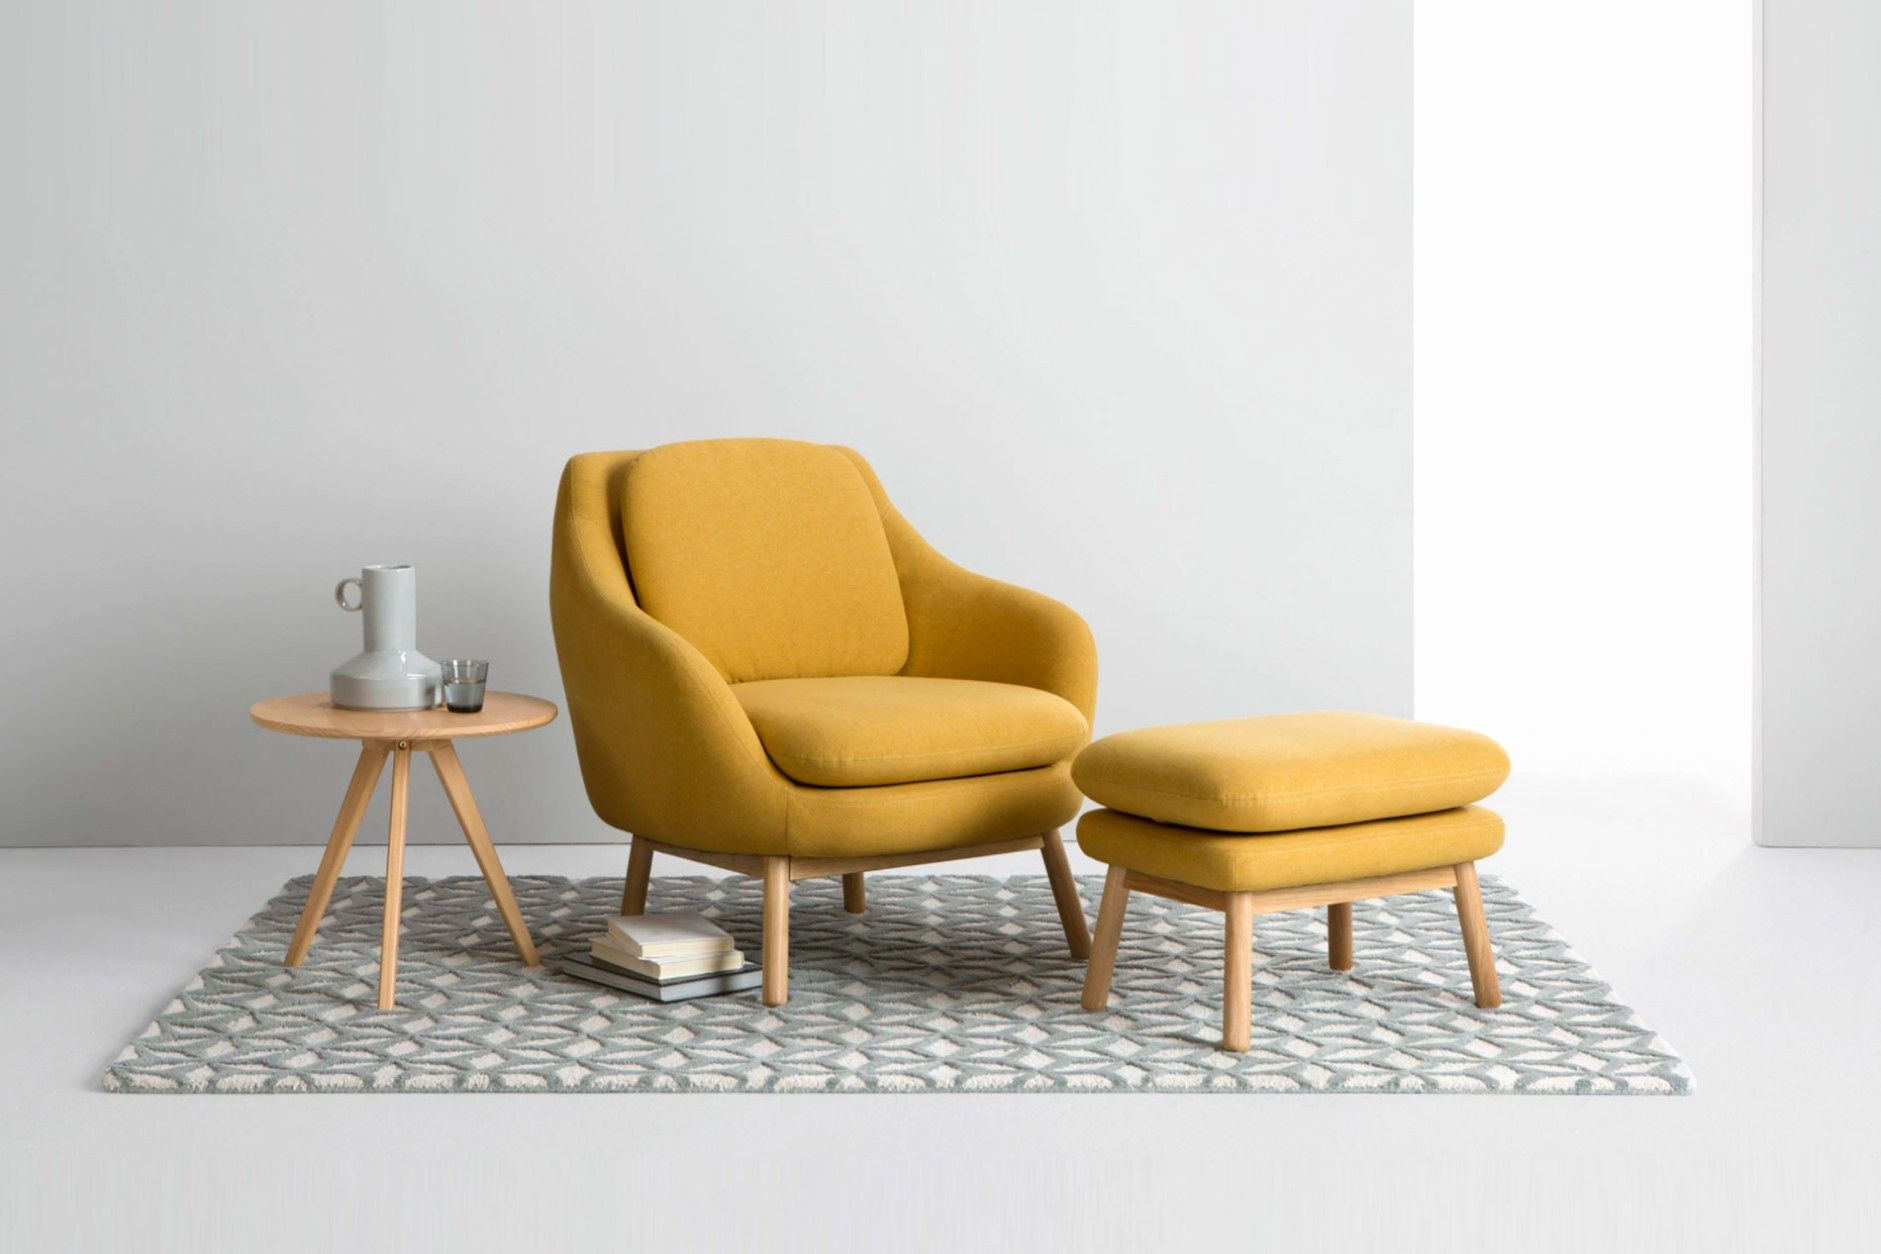 Fauteuil Scandinave Jaune Moutarde Luxe Fauteuil Scandinave Moutarde Chaise Scandinave Moutarde Cha Fauteuil Jaune Fauteuil Scandinave Jaune Fauteuil D Appoint